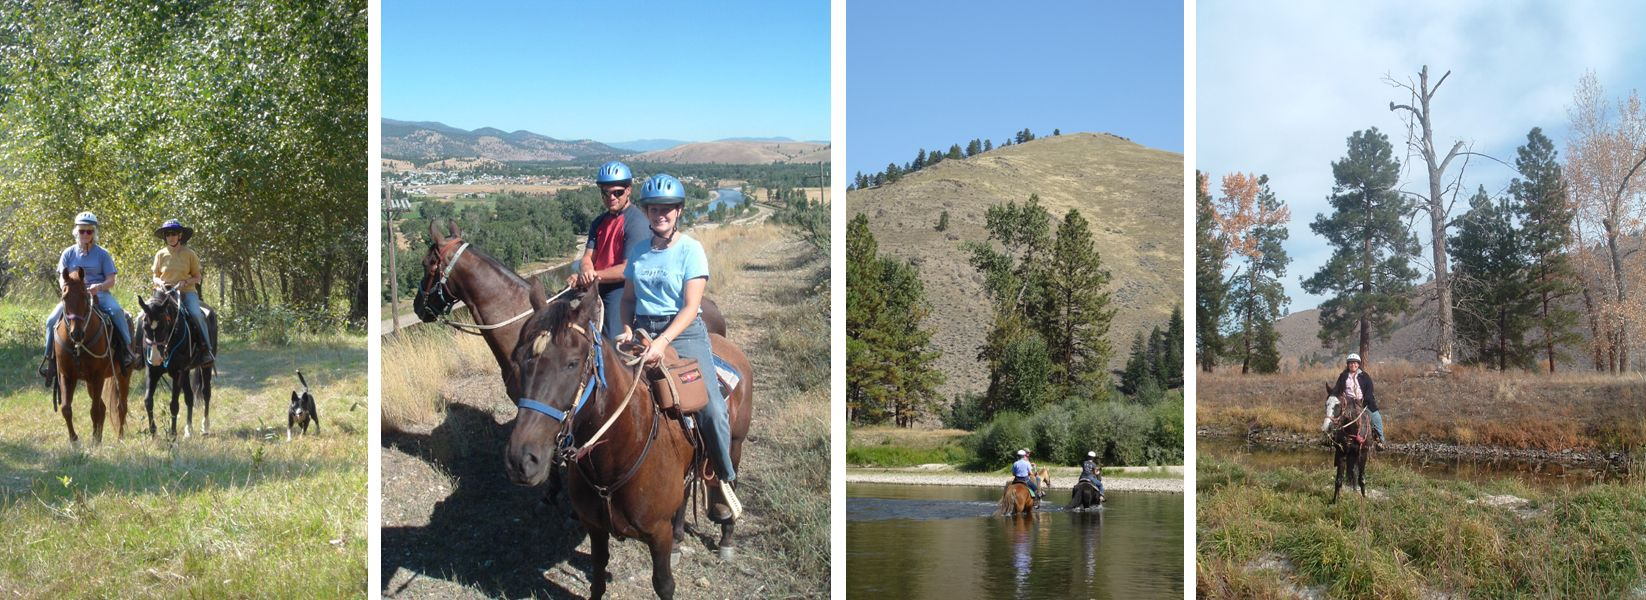 Horse riding dunrovin ranch for Bitterroot motors missoula montana